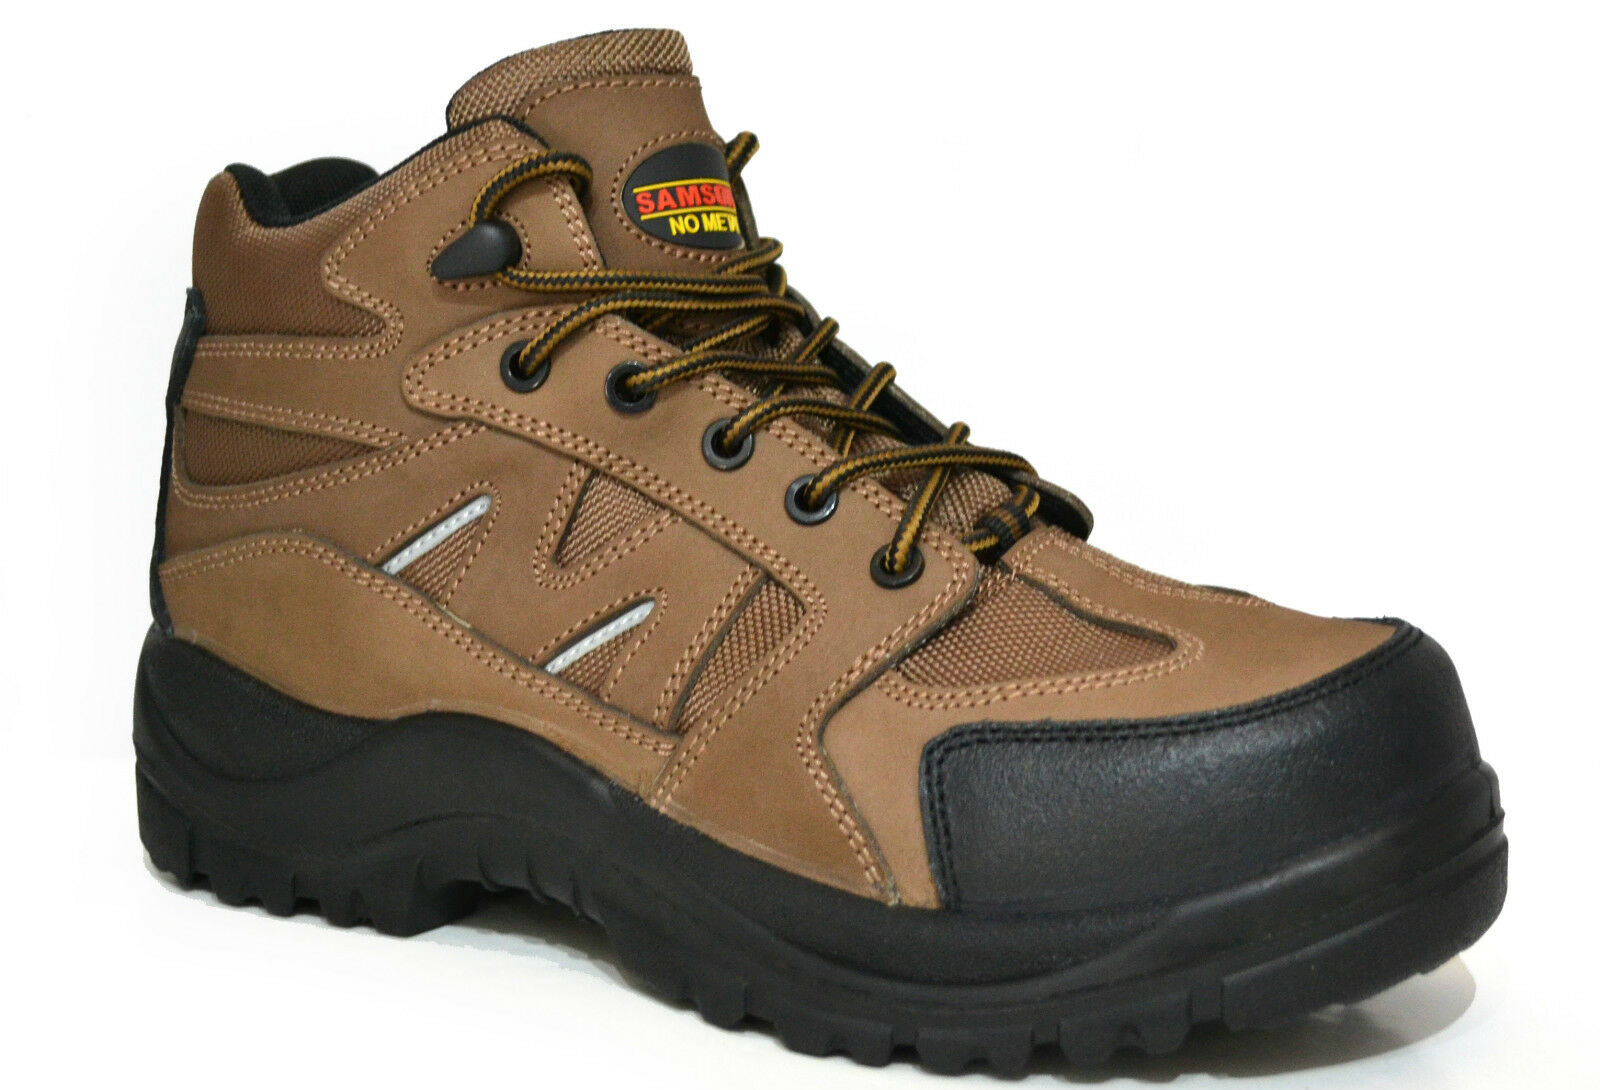 SAMSON XL 7204 Toe S3 SRC Marrone Composite Toe 7204 Cap IMPERMEABILE METAL FREE calzature di sicurezza 742cc1